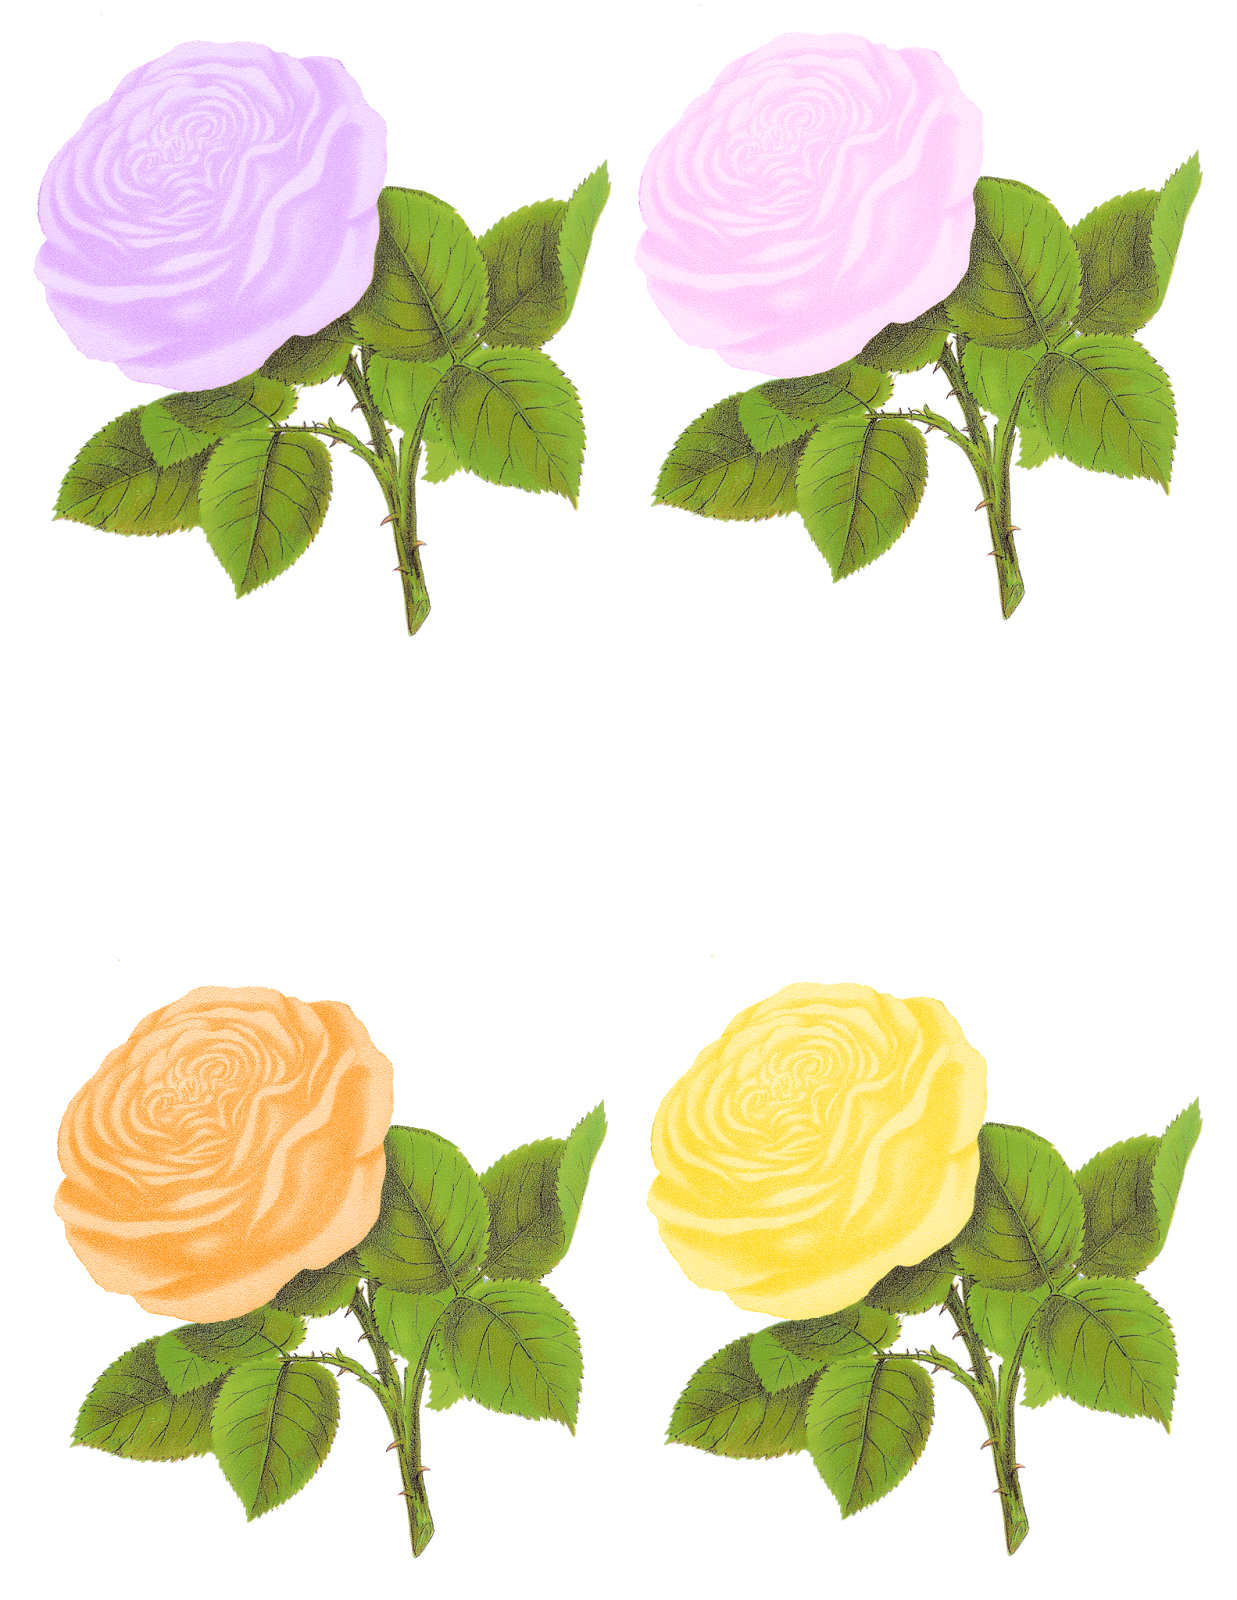 Paper flower clipart clipart transparent library Antique Images: Paper Crafting Rose Digital Collage Sheet Flower ... clipart transparent library